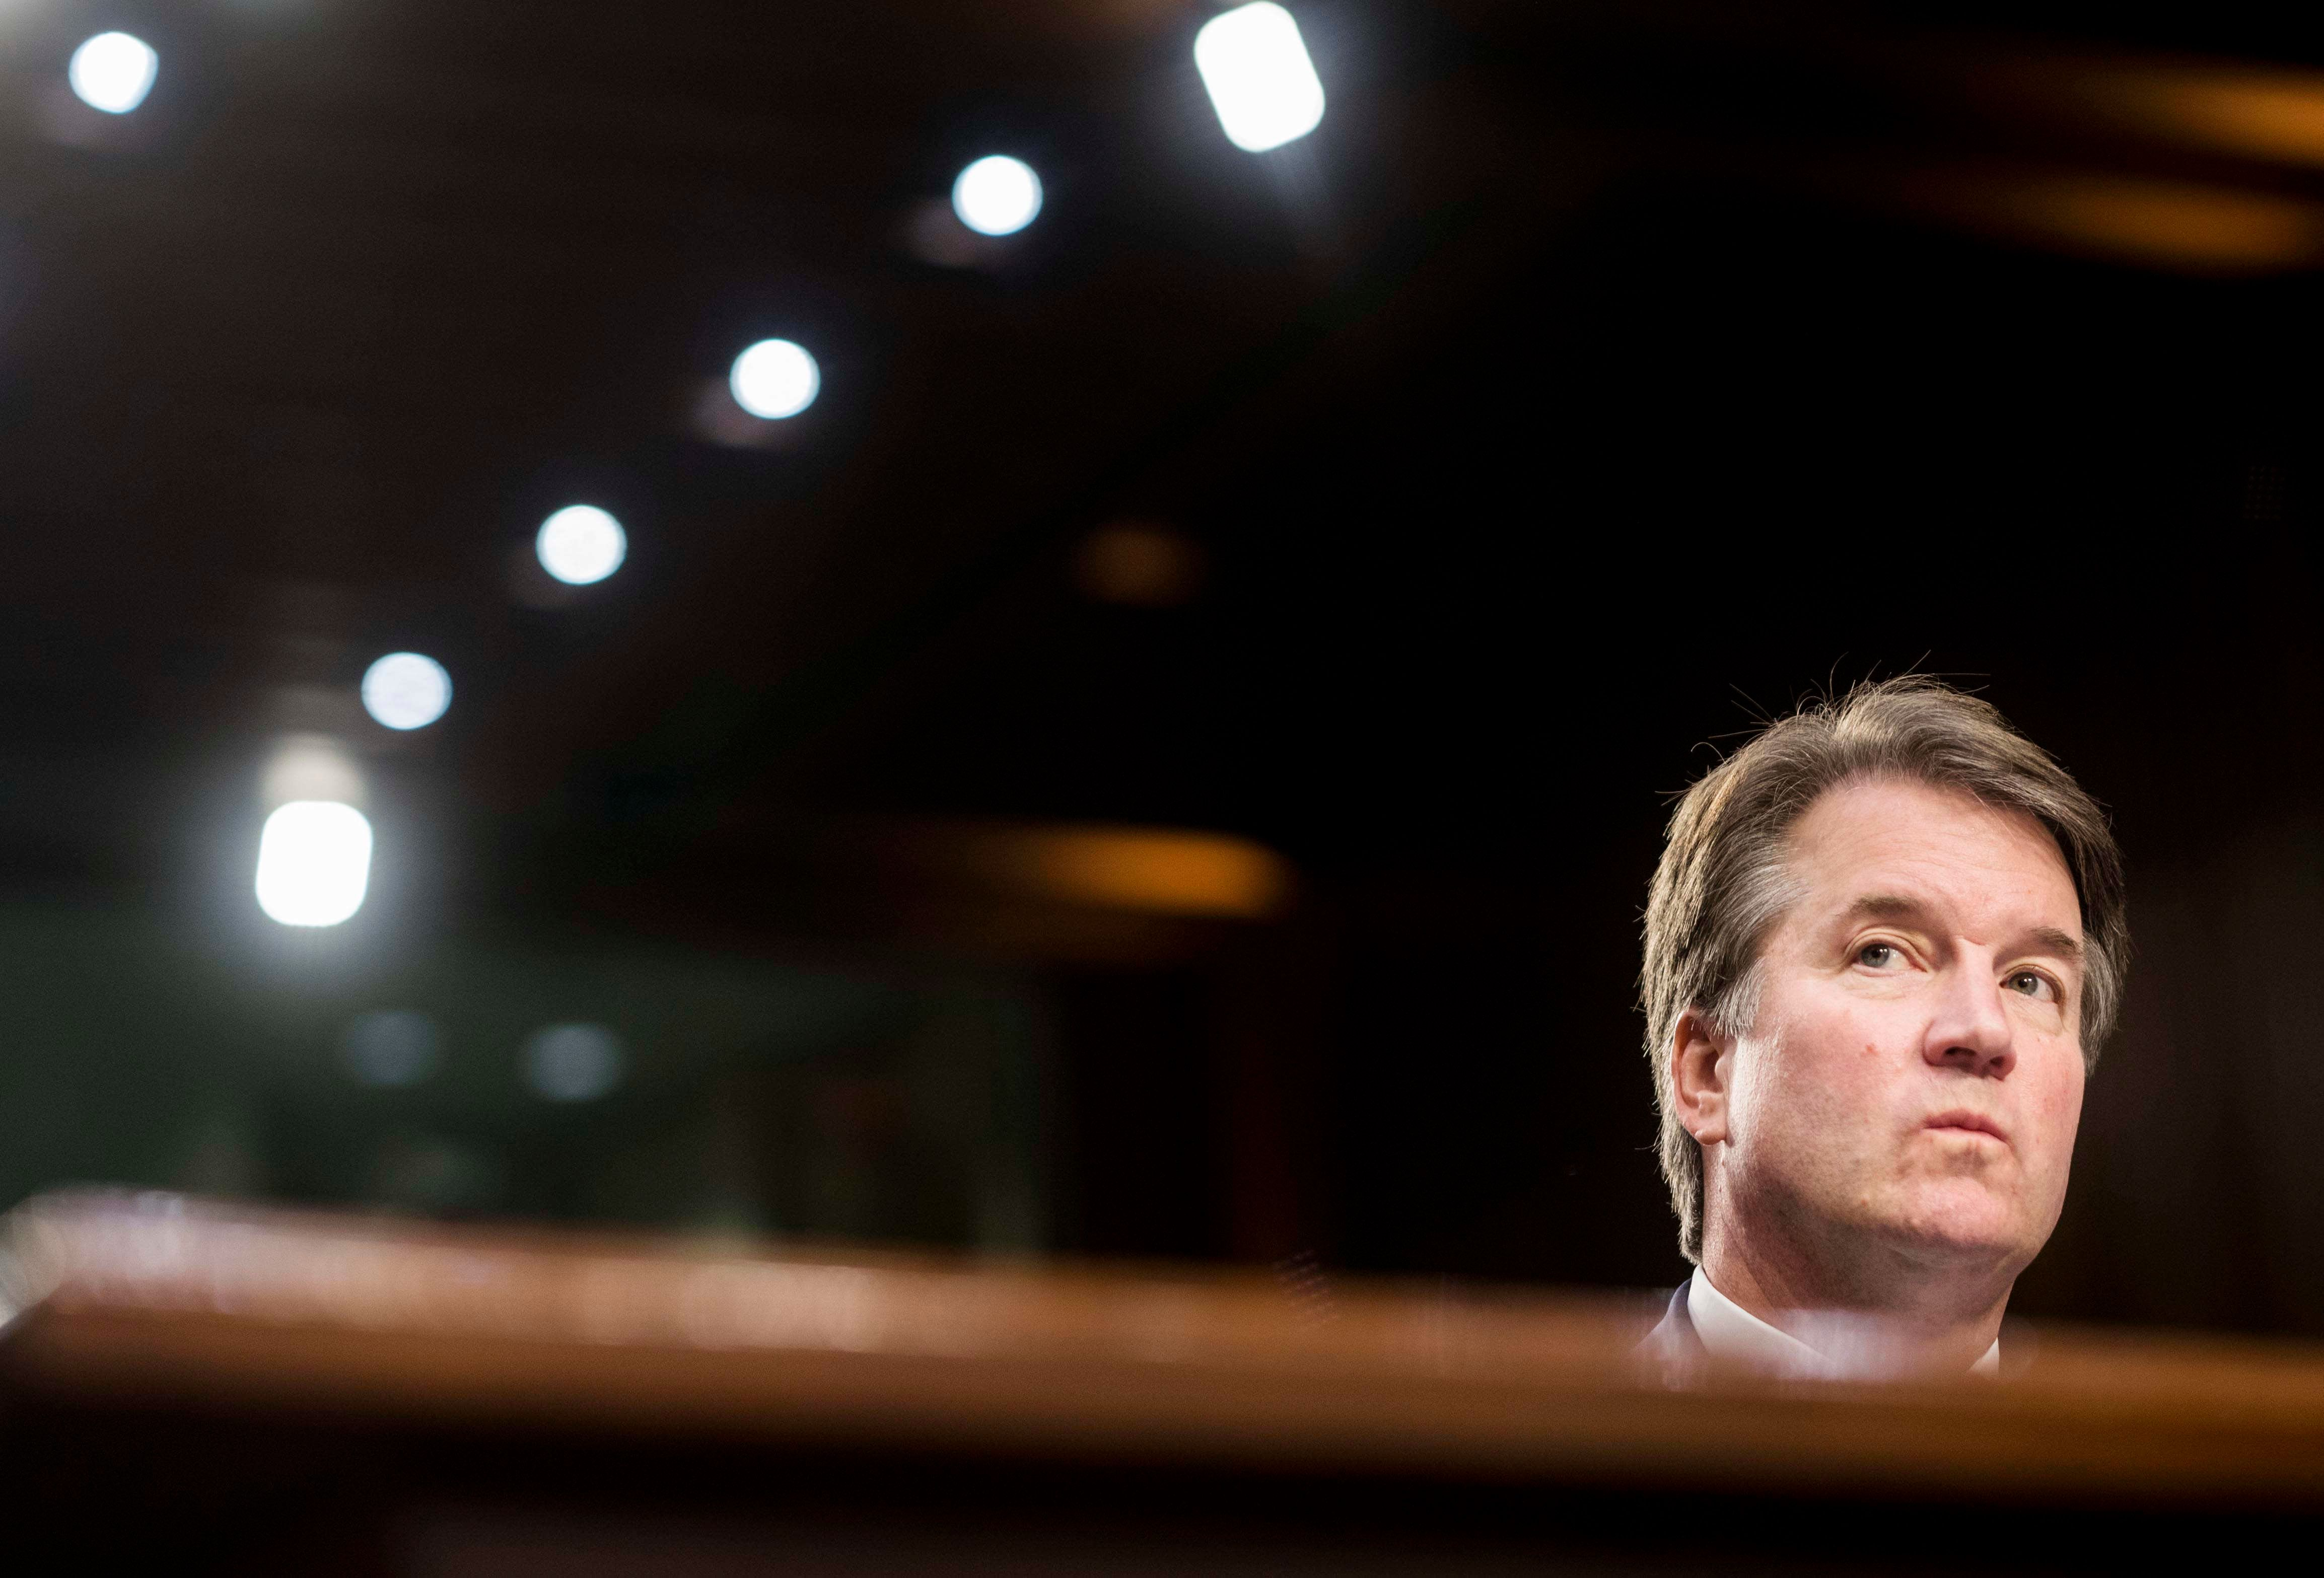 WASHINGTON, DC - Supreme Court nominee Brett Kavanaugh during his confirmation hearing in the Senate Judiciary Committee on Capitol Hill in Washington, DC on Wednesday September 5, 2018. (Photo by Melina Mara/The Washington Post via Getty Images)